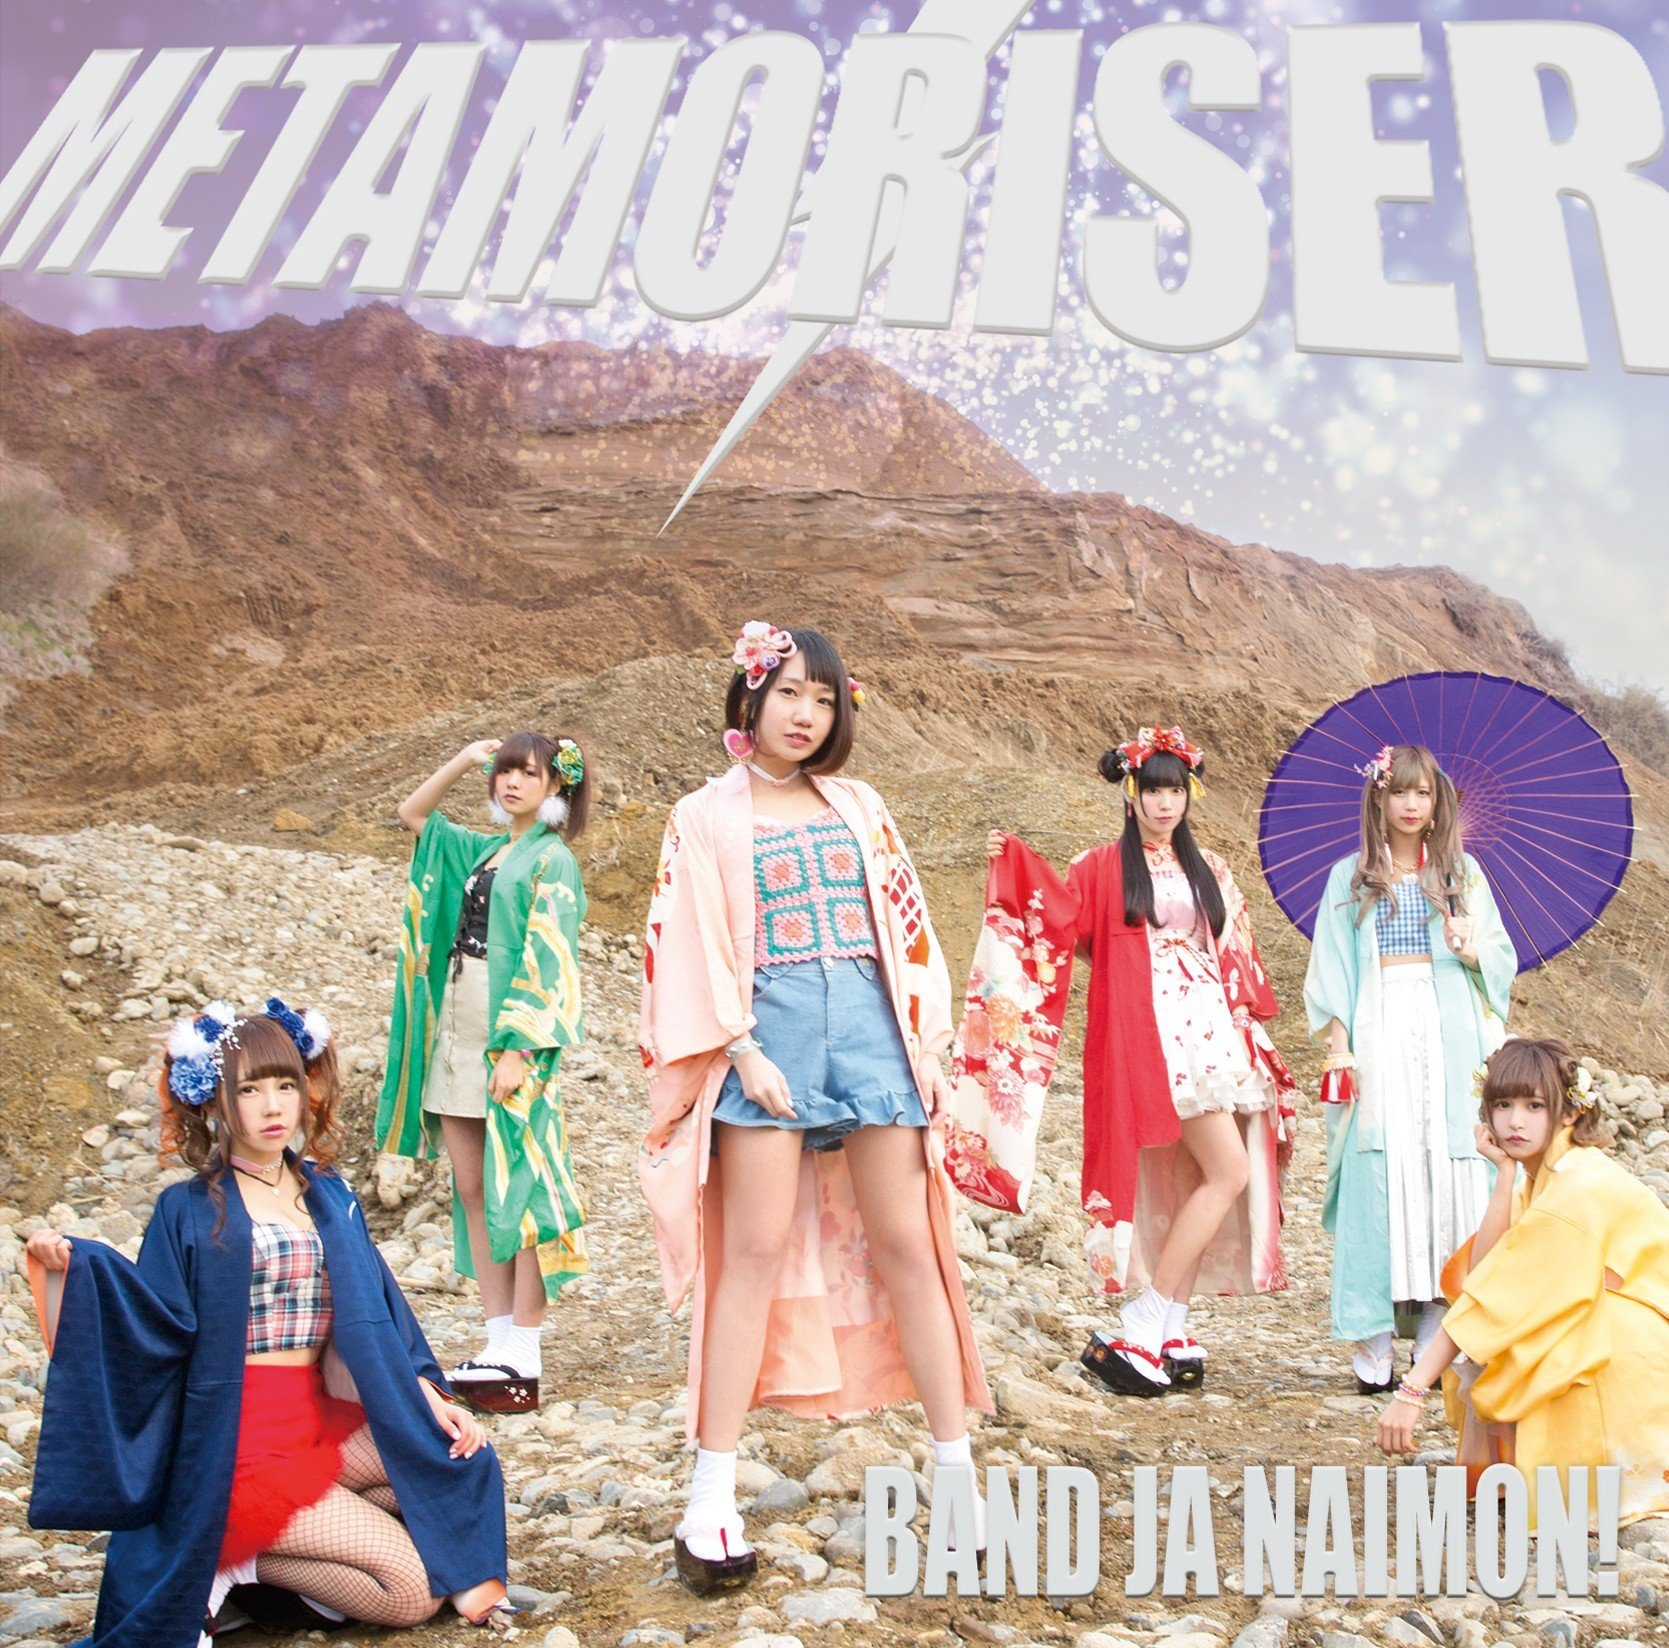 [Single] バンドじゃないもん! (Band Ja Naimon!) – METAMORISER [FLAC / 24bit Lossless / WEB] [2017.05.17]